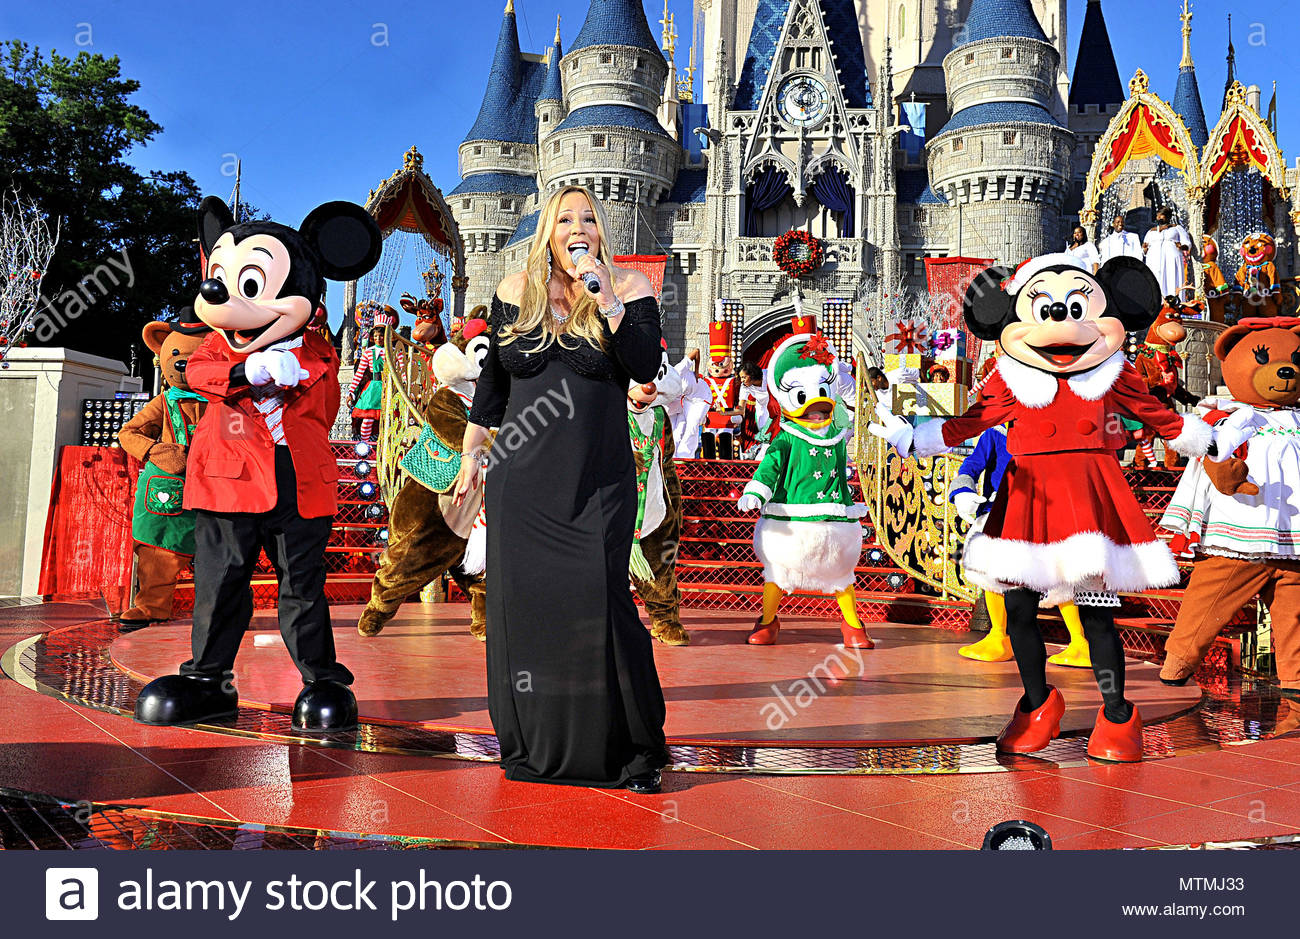 mariah carey a very pregnant mariah carey got the disney royal treatment by arriving to her performance at disney world in a white horse drawn carriage - Mickey Mouse Christmas Songs